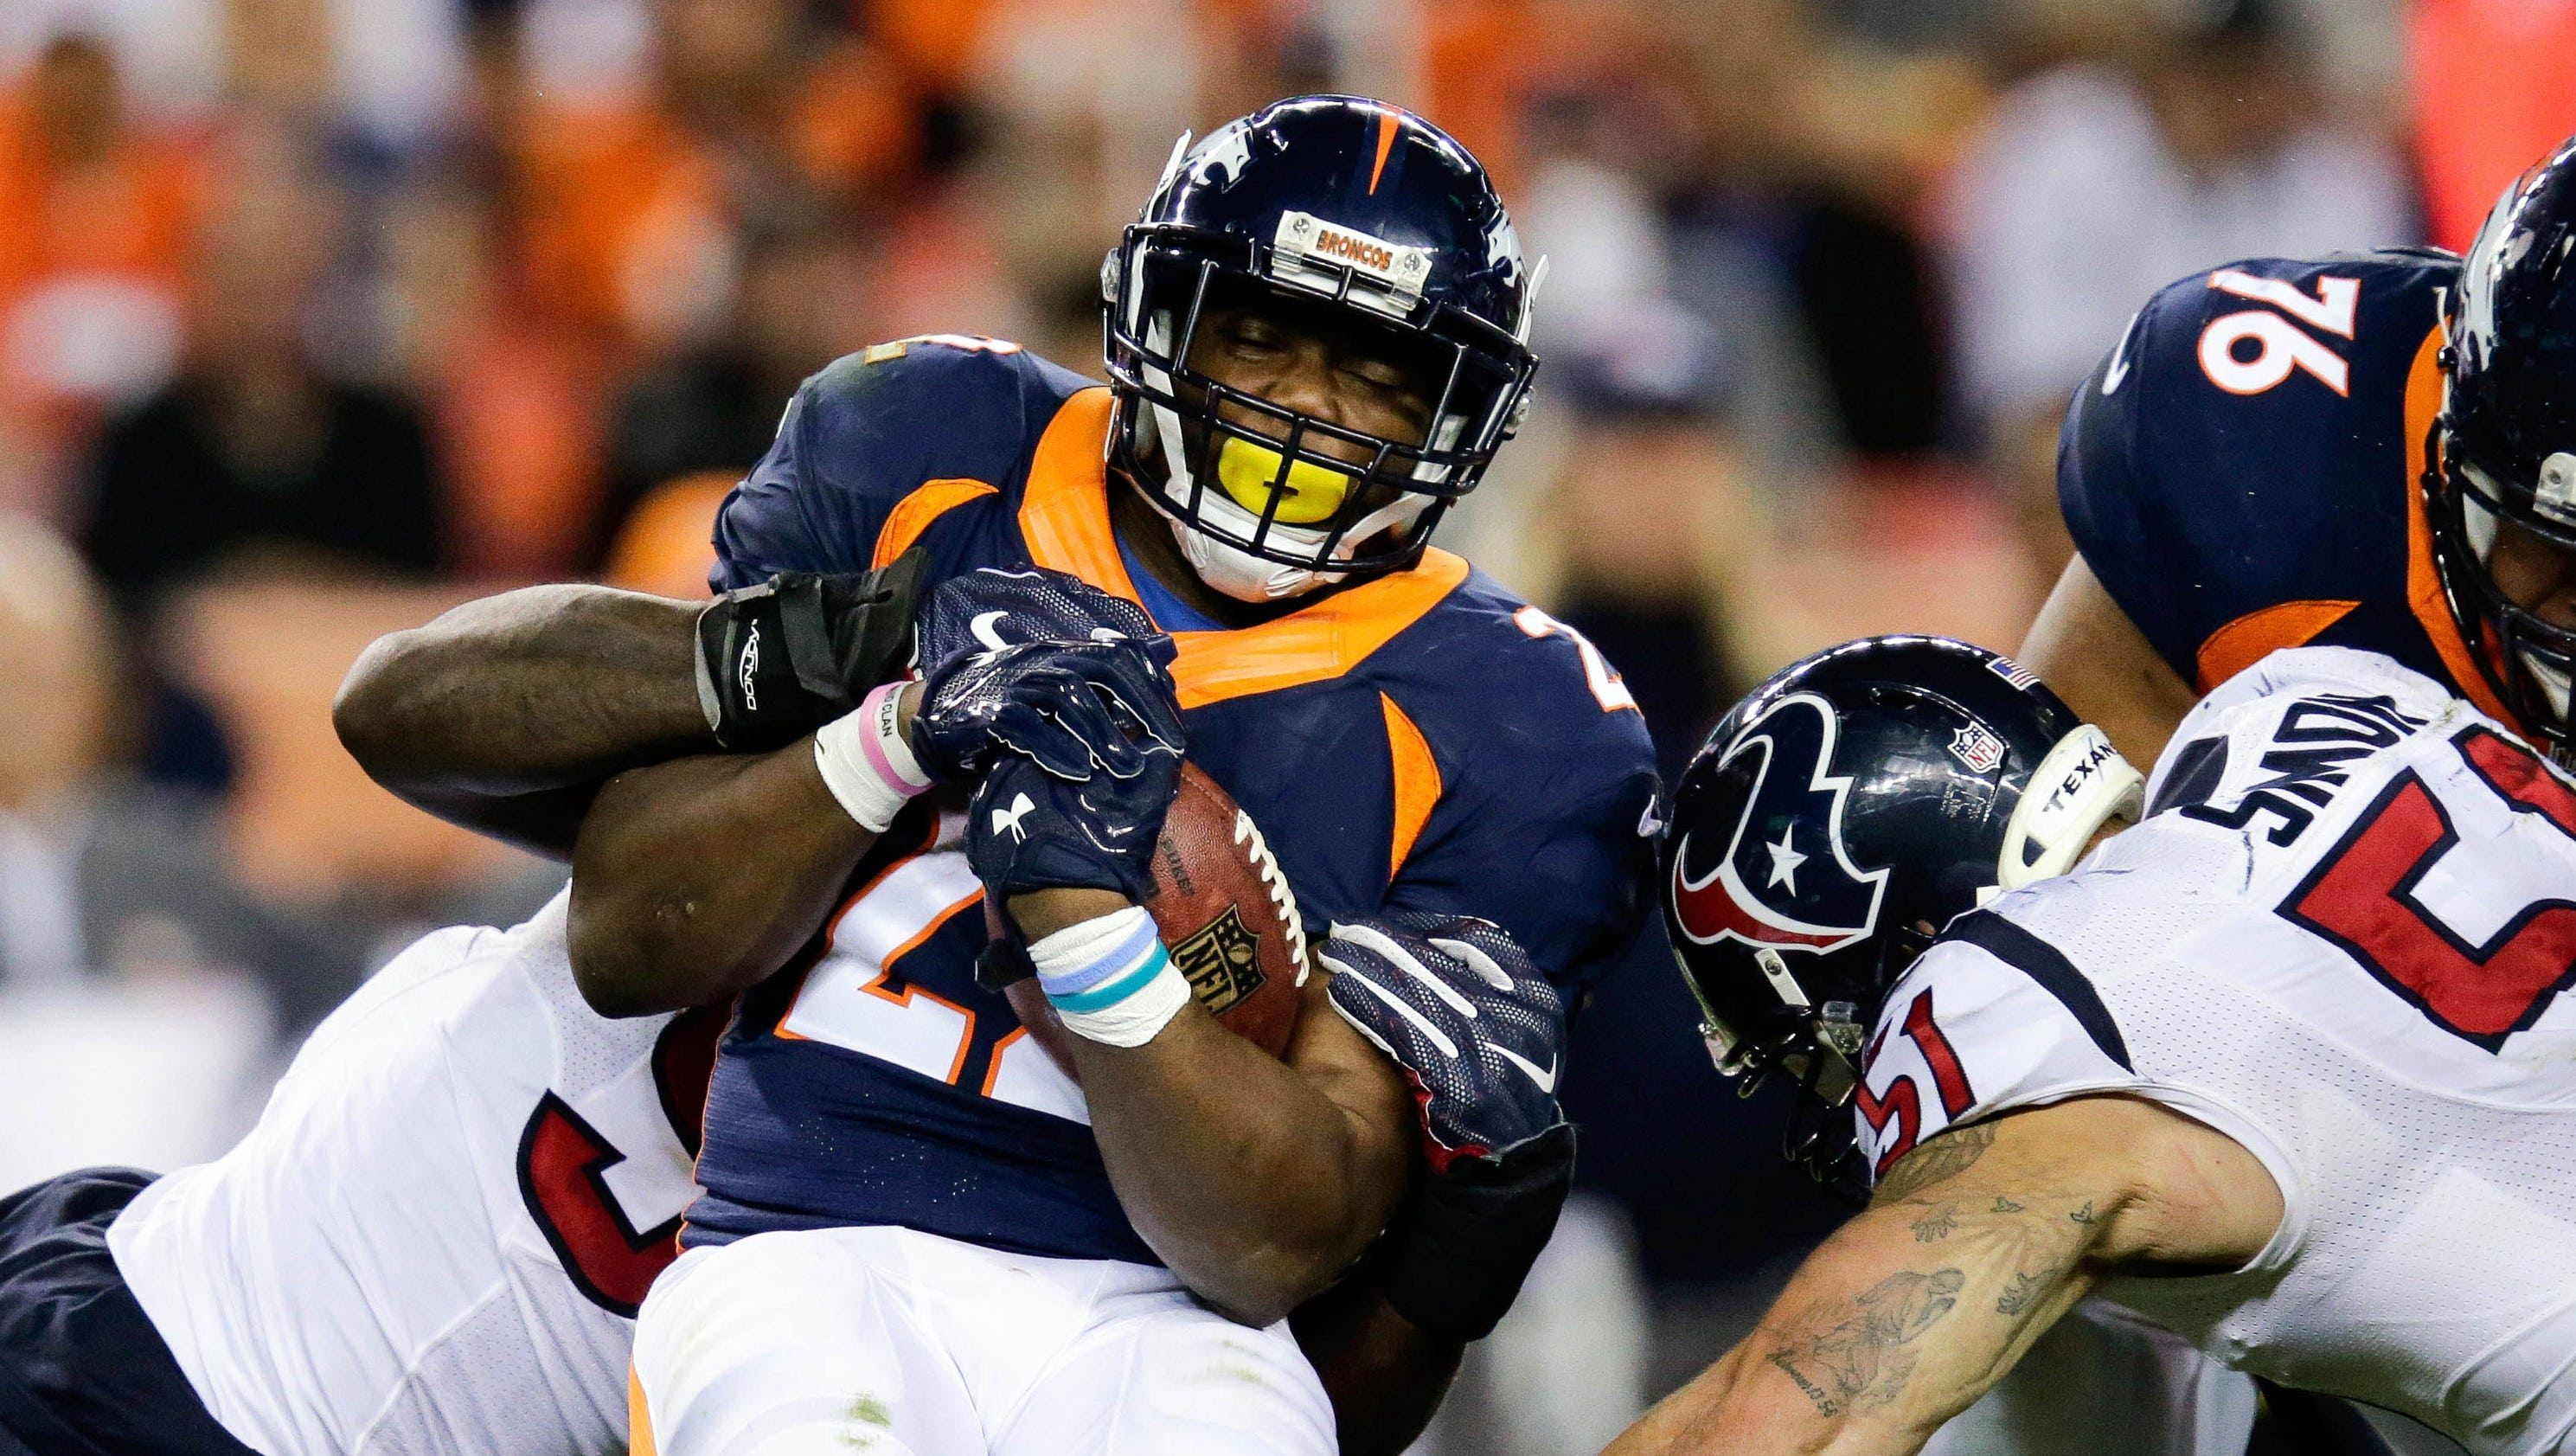 Broncos RB C.J. Anderson headed to injured reserve, out at least two months